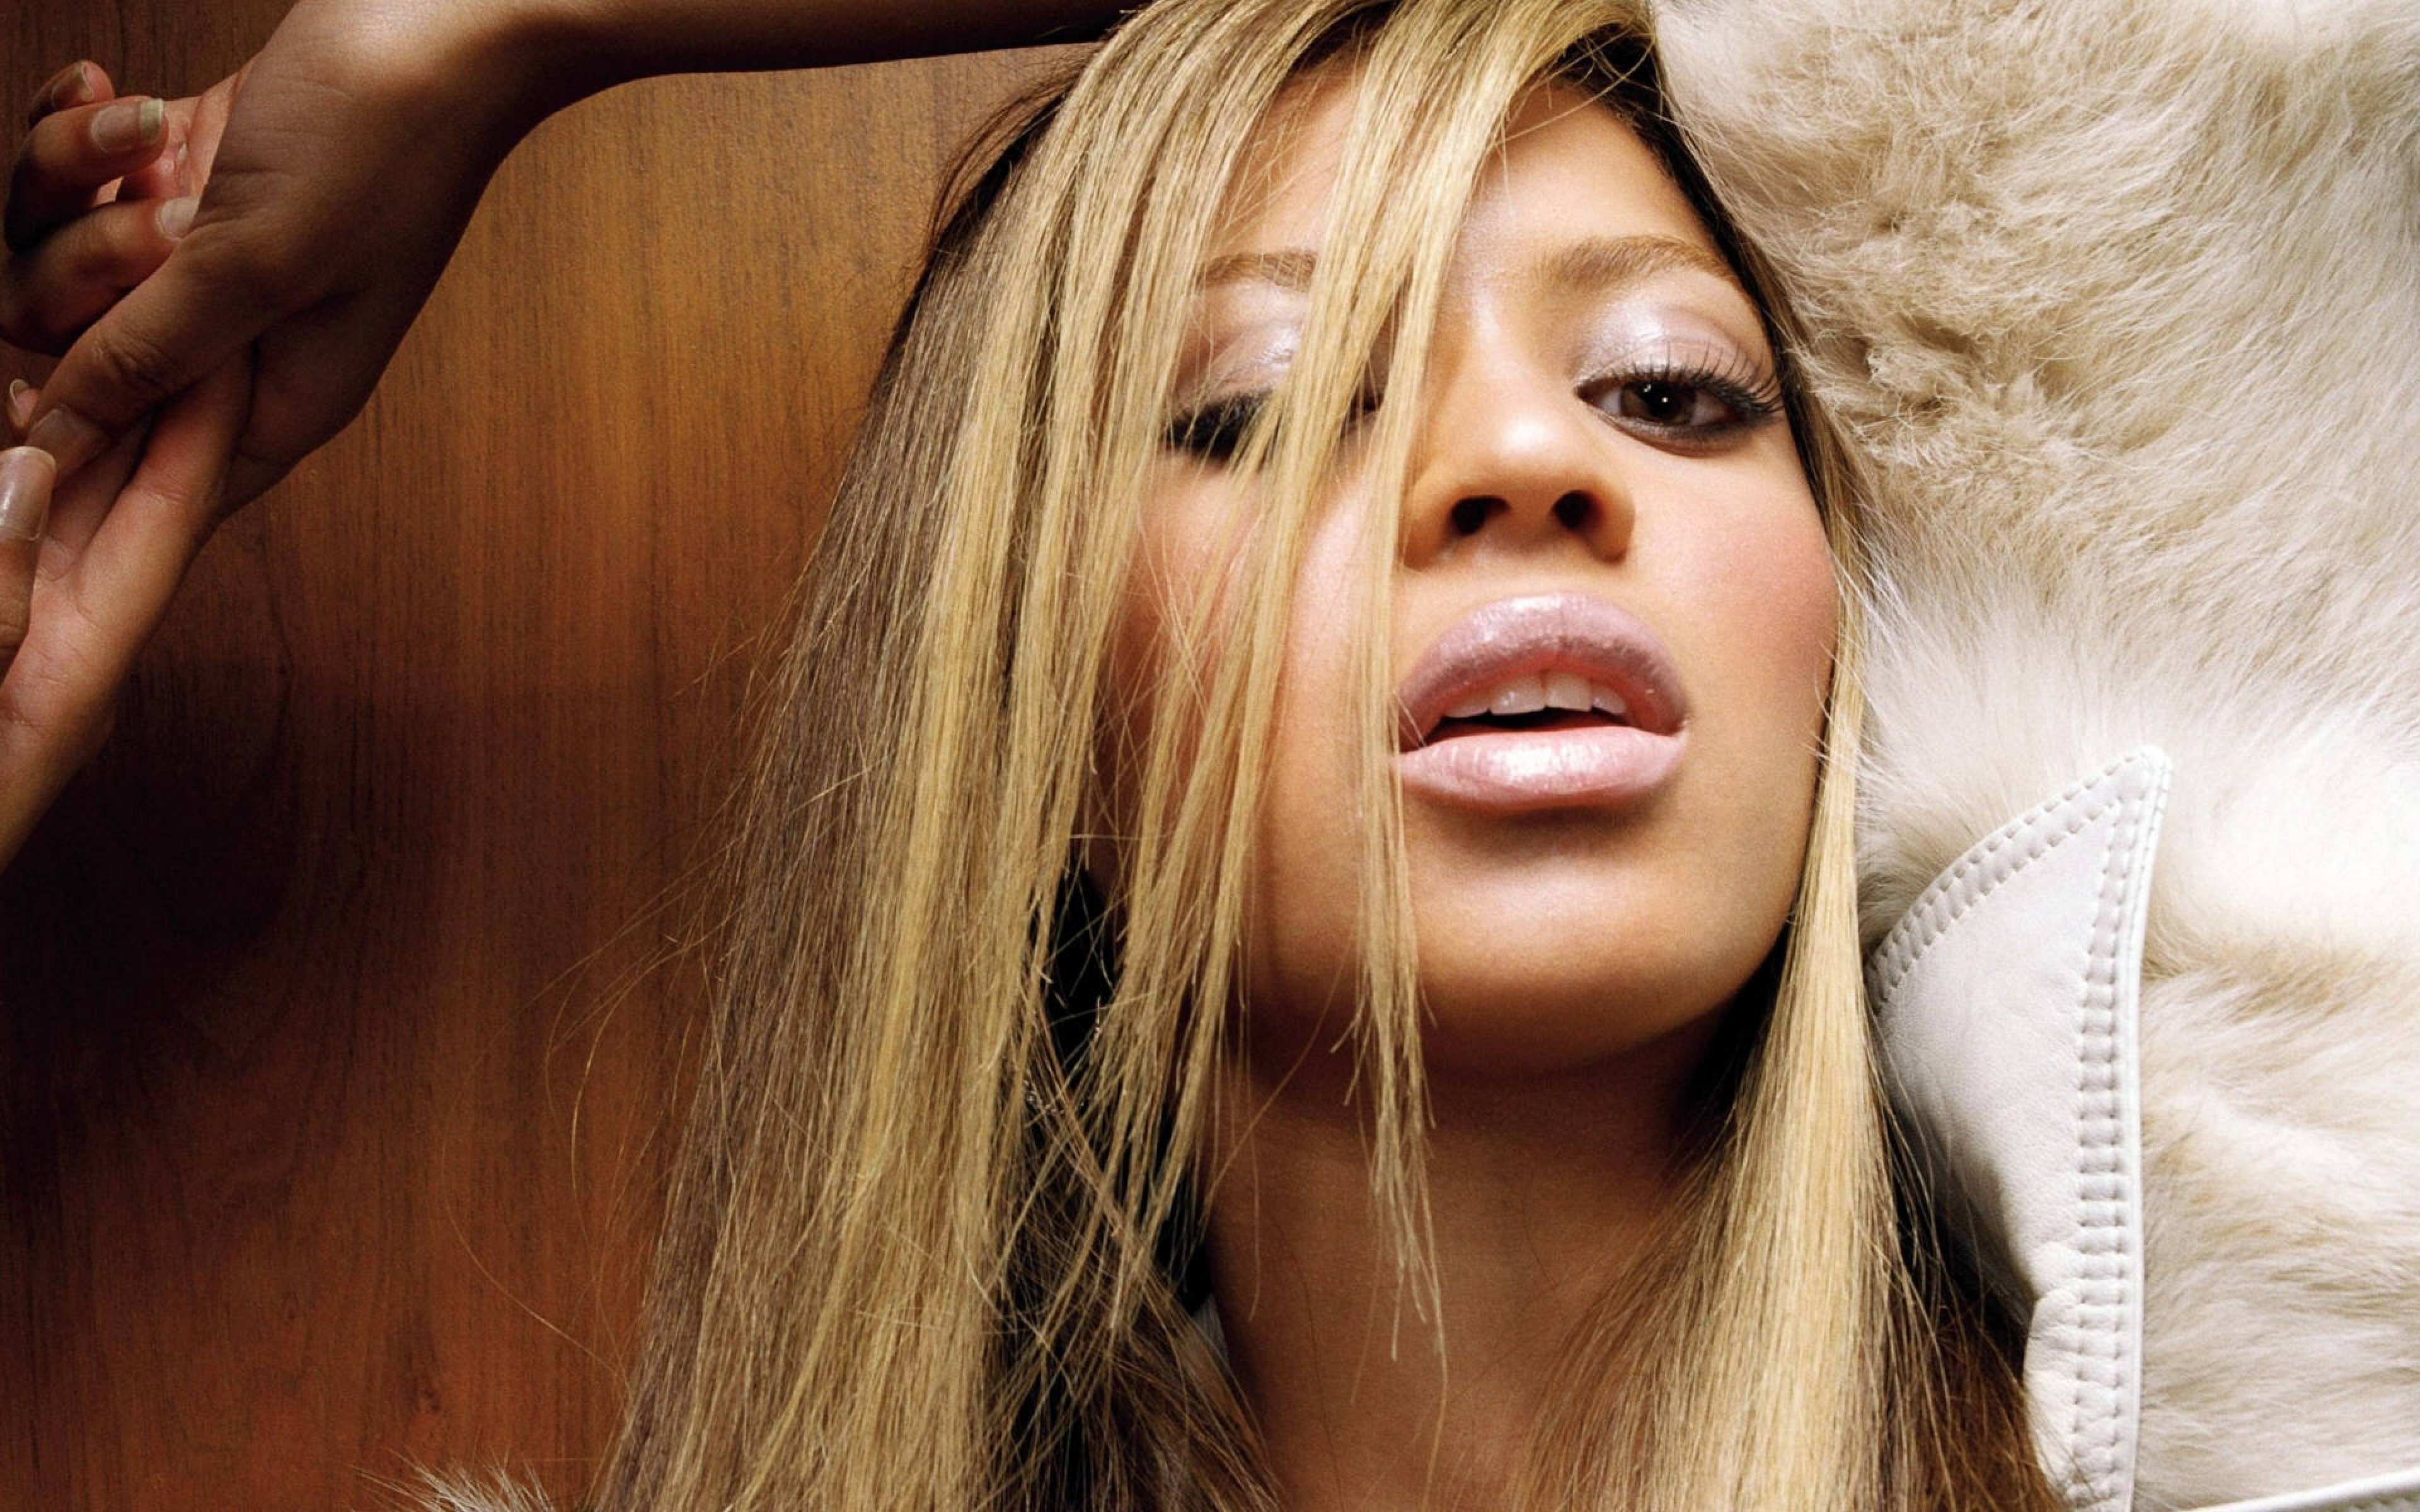 Download Wallpaper 3840x2400 Beyonce Girl Singer Blonde 3840x2400